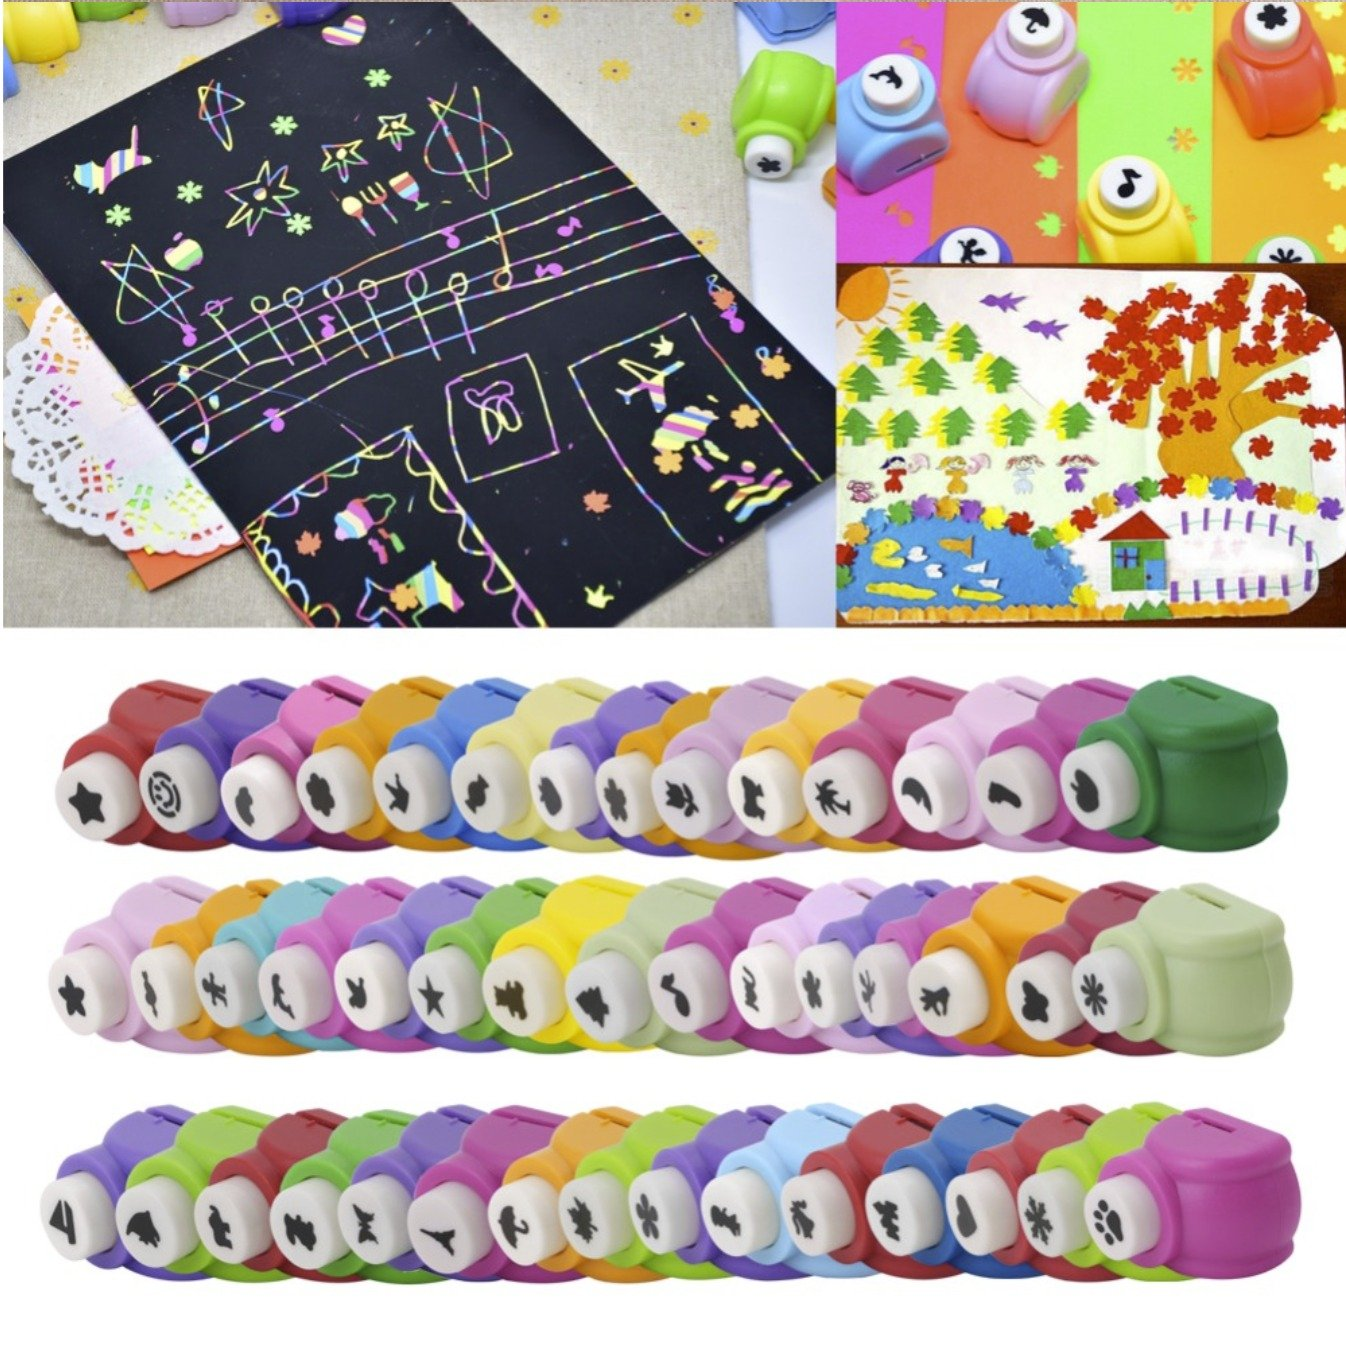 Magicwand DIY Art Craft Punch Kit for School ProjectsGift